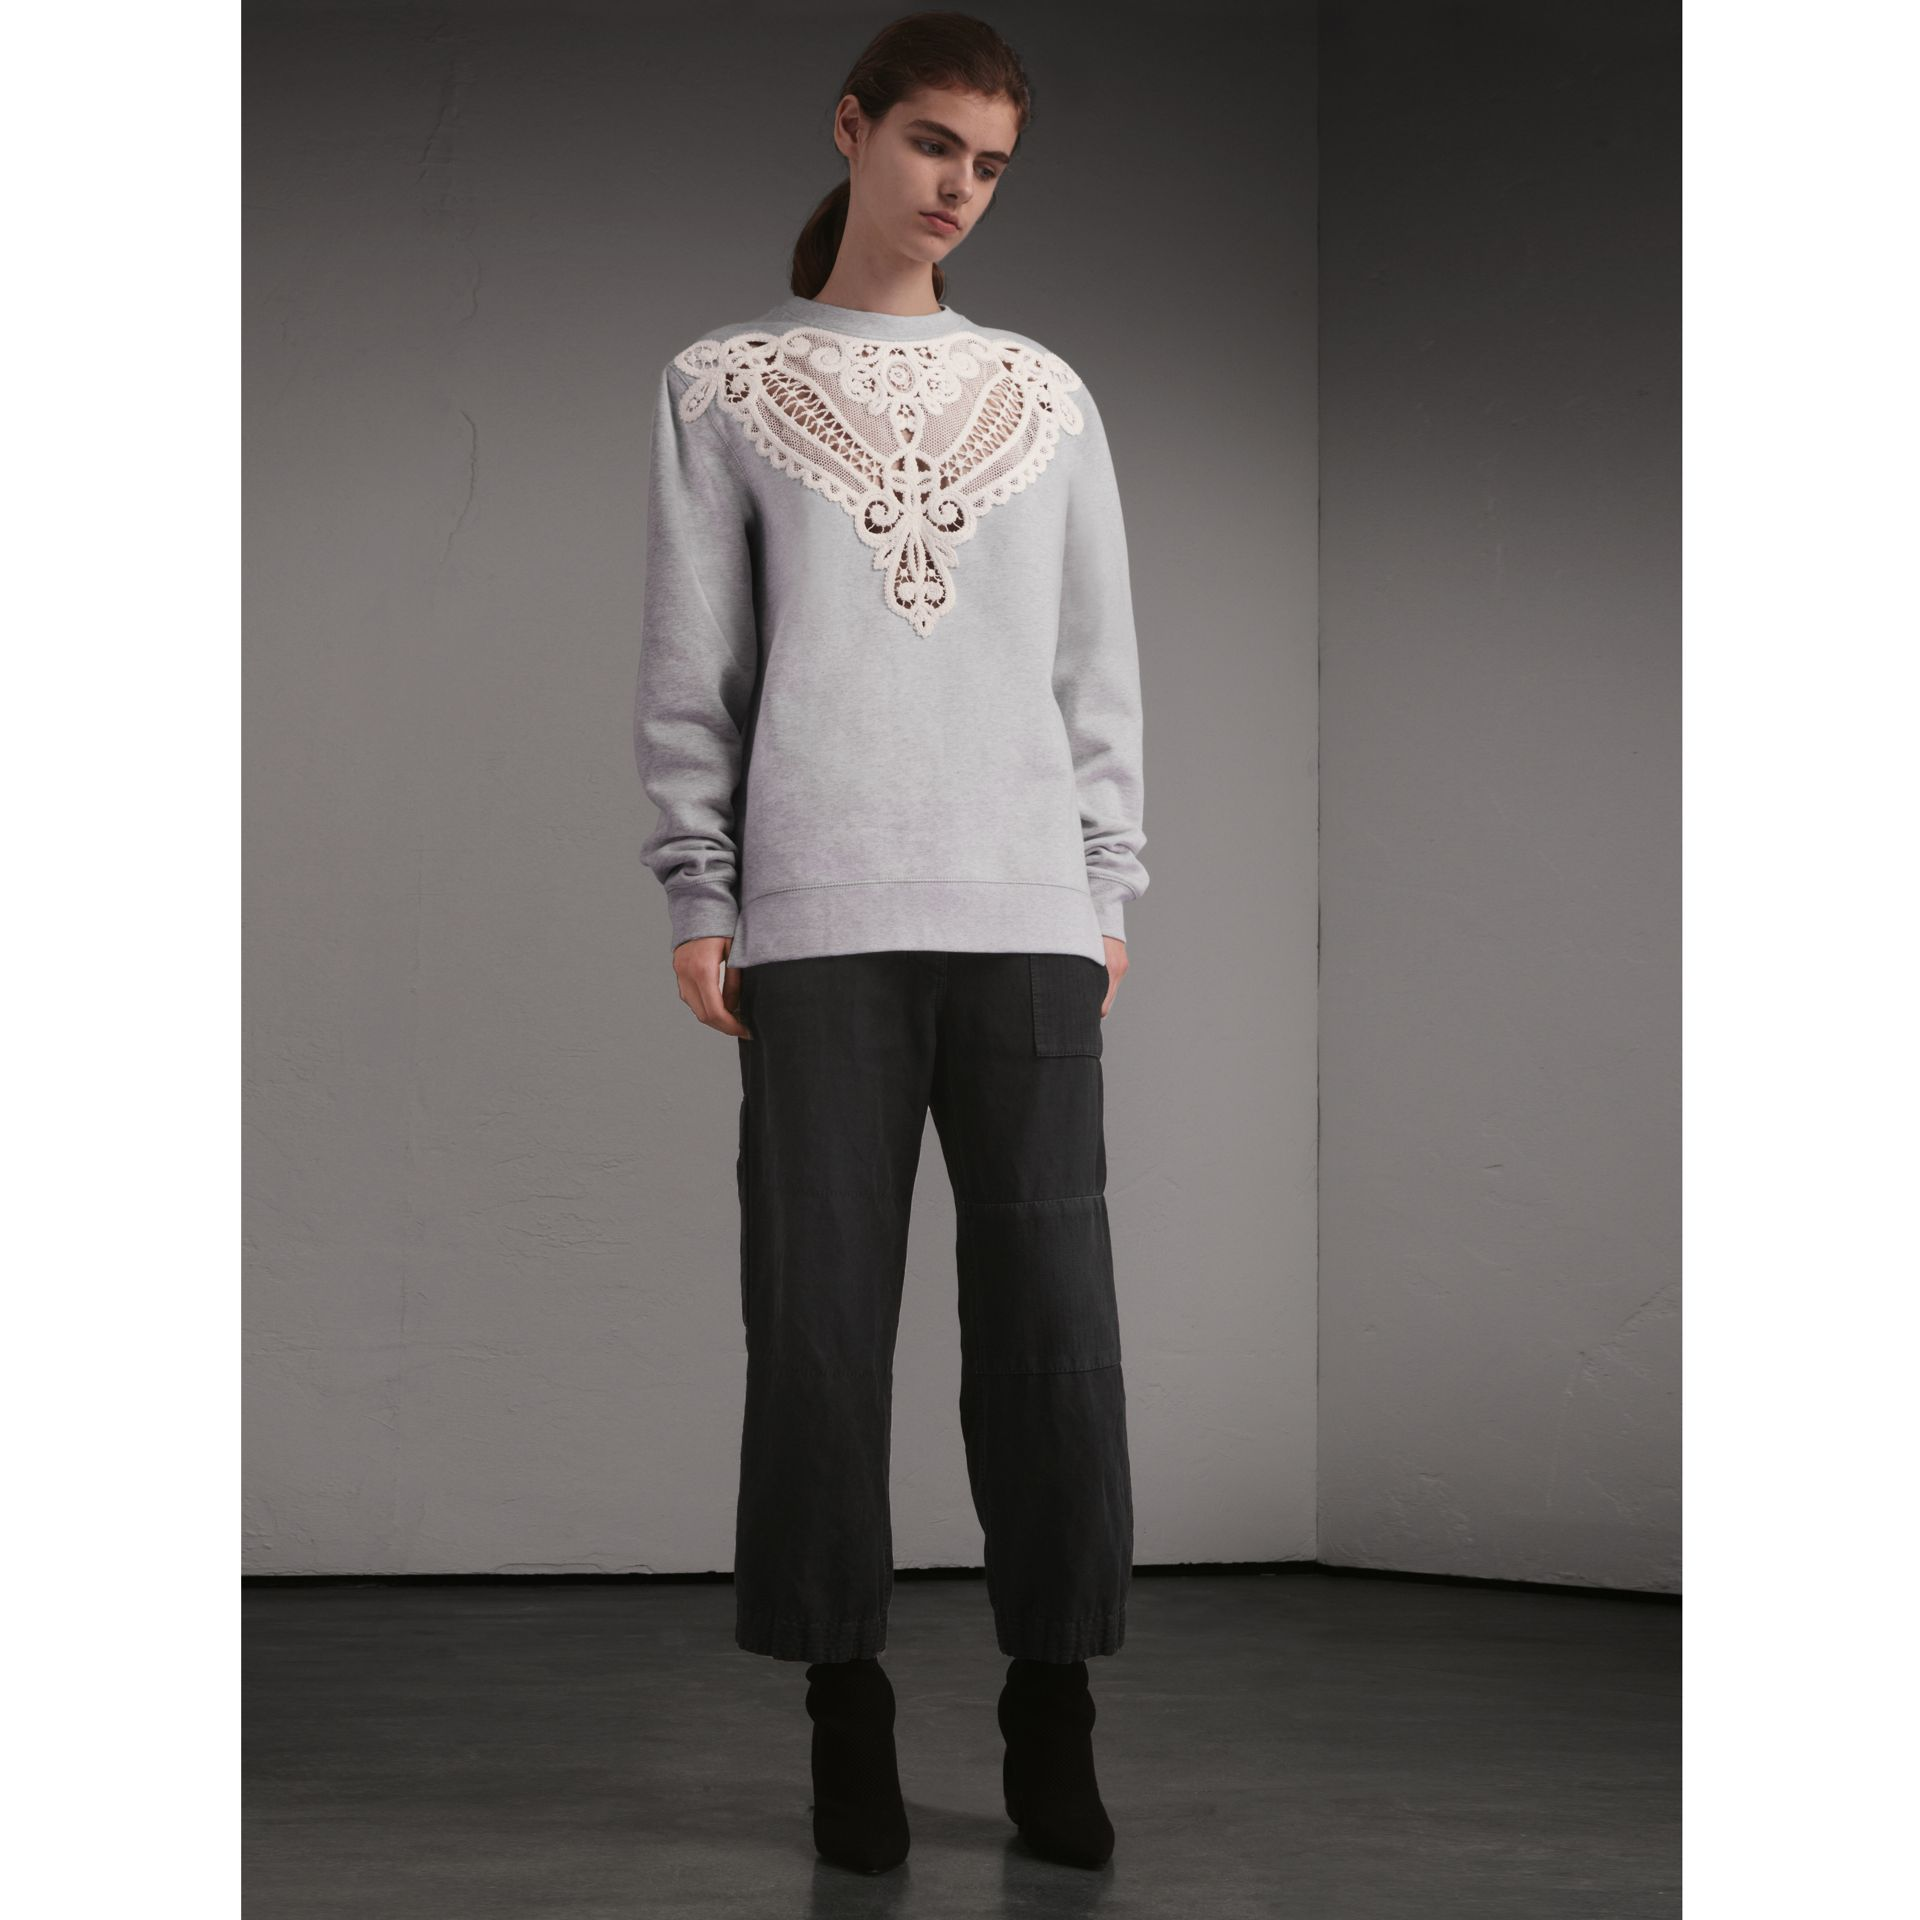 Unisex Lace Cutwork Sweatshirt in Light Grey Melange - Women | Burberry Singapore - gallery image 7